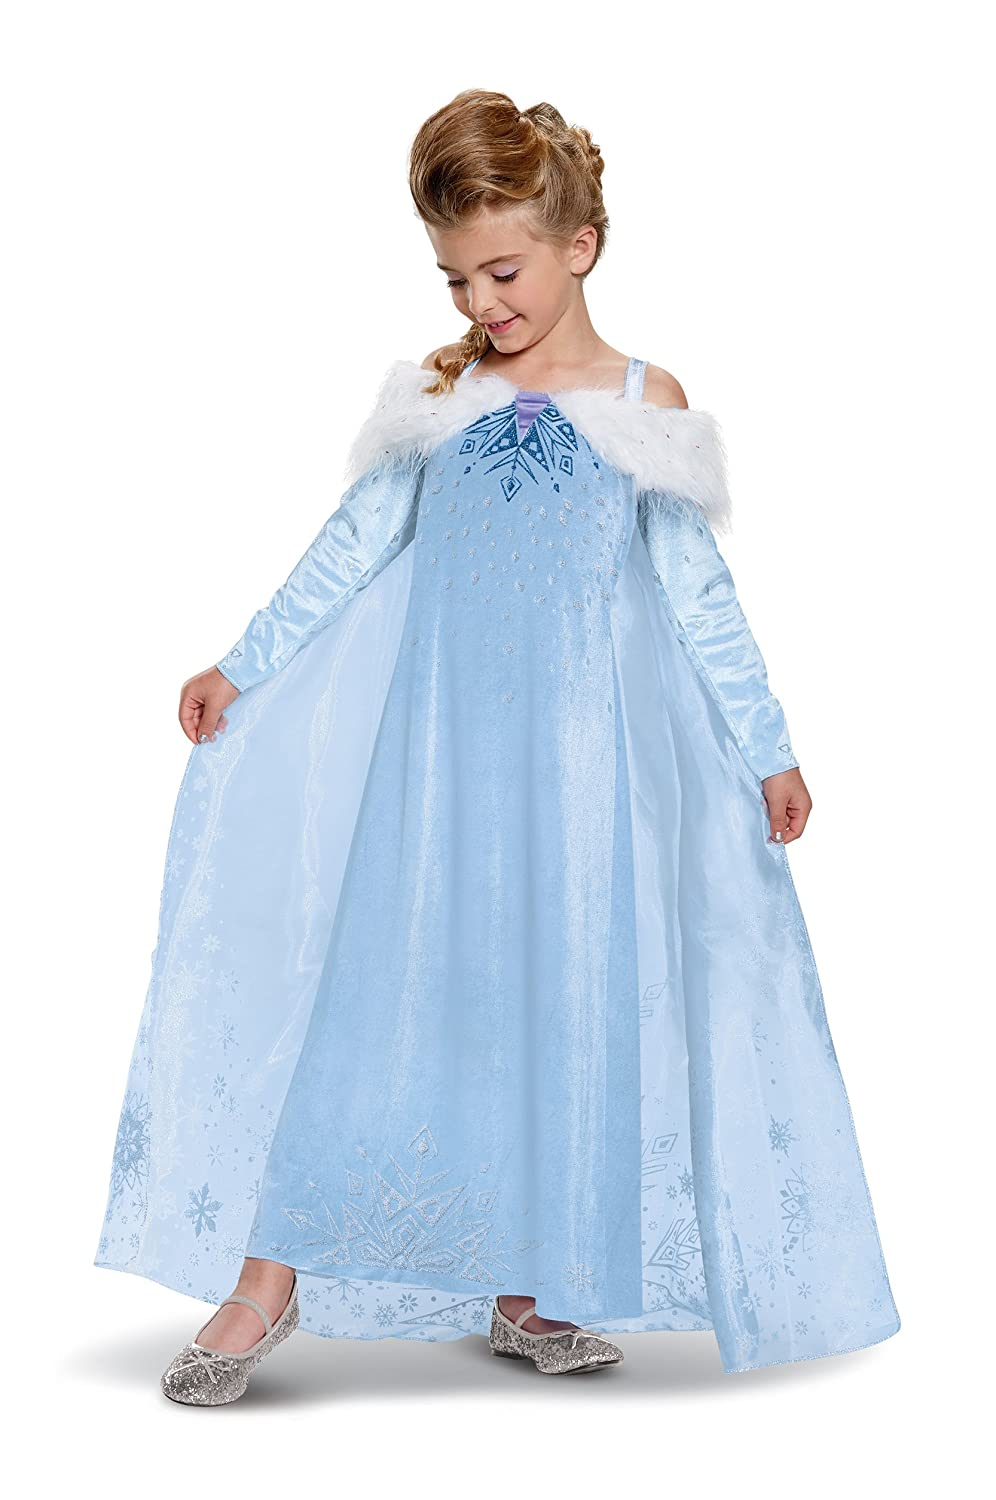 Disguise Girls Frozen Elsa Adventure Dress Deluxe Girls Disguise Fancy dress costume 3T/4T ddc118